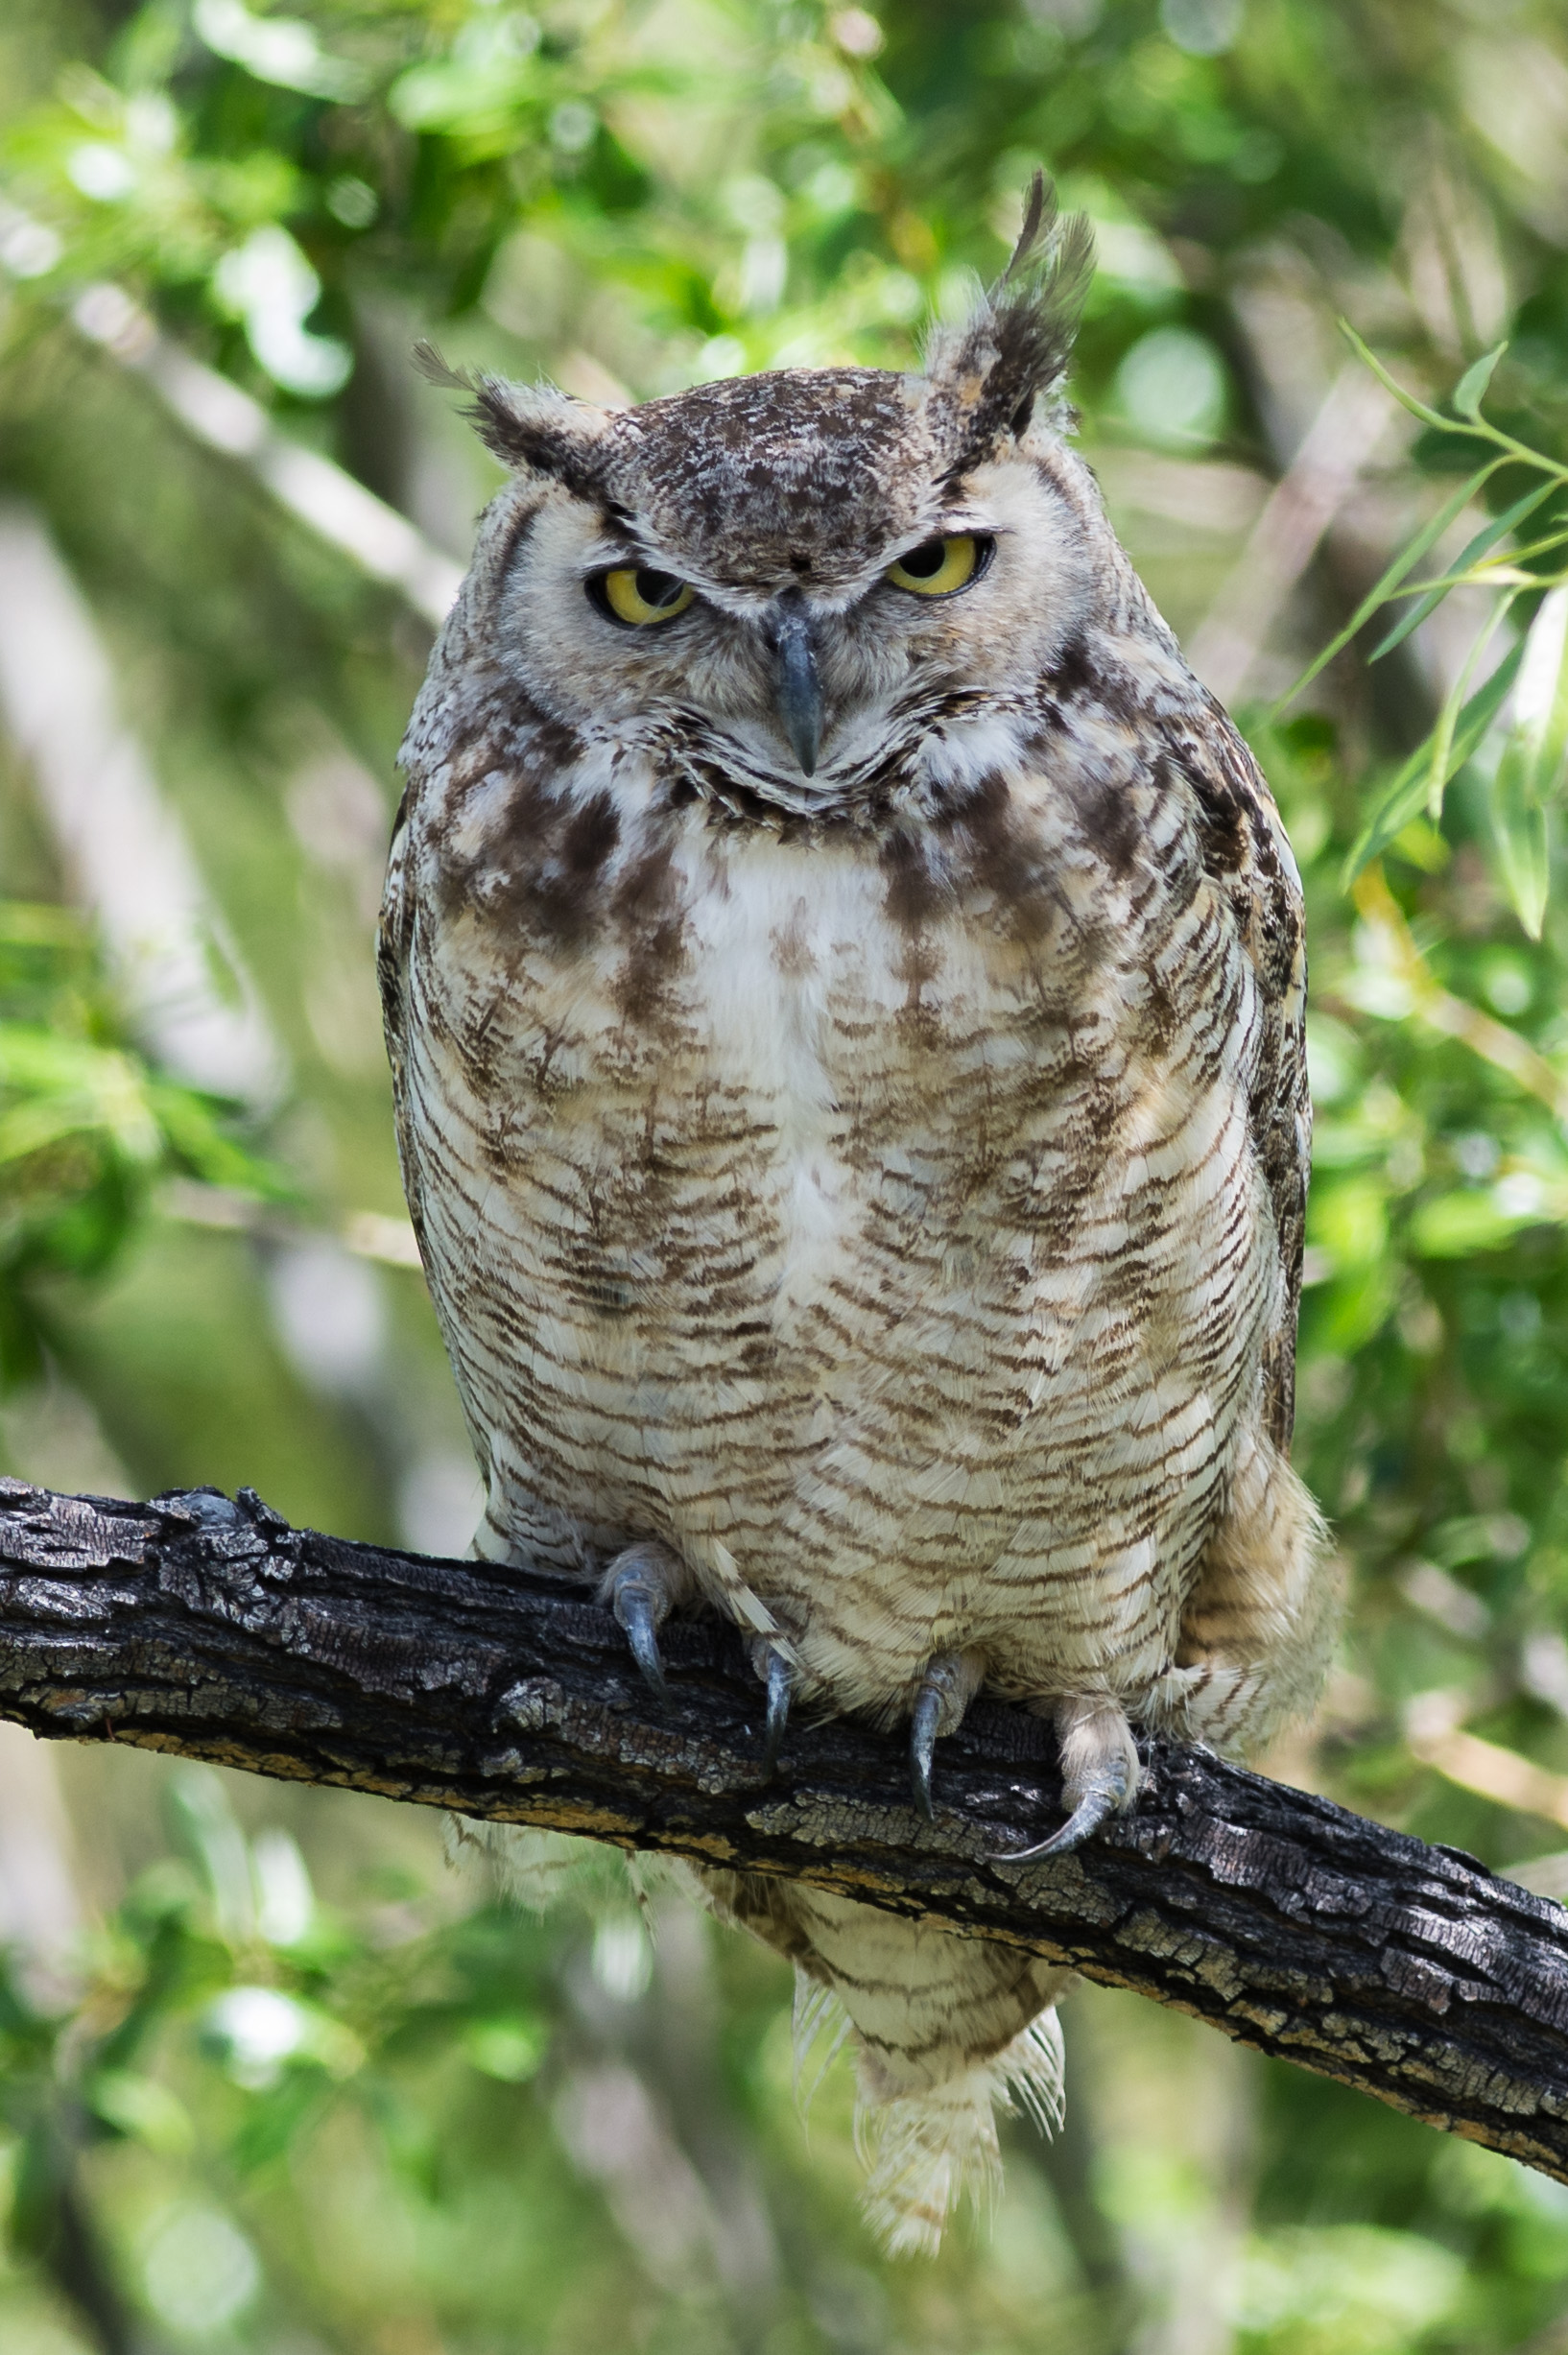 Great Horned Owl (Bubo virginianus) at Washoe SP, WAS (NV)  EQ: D7200, 300mm f/2.8    Taken: 5-12-2016 at 10:58   Settings: 450mm (35mm eqiv), 1/640s, f/3.5, ISO320, +1/3EV     Conditions: Sunny